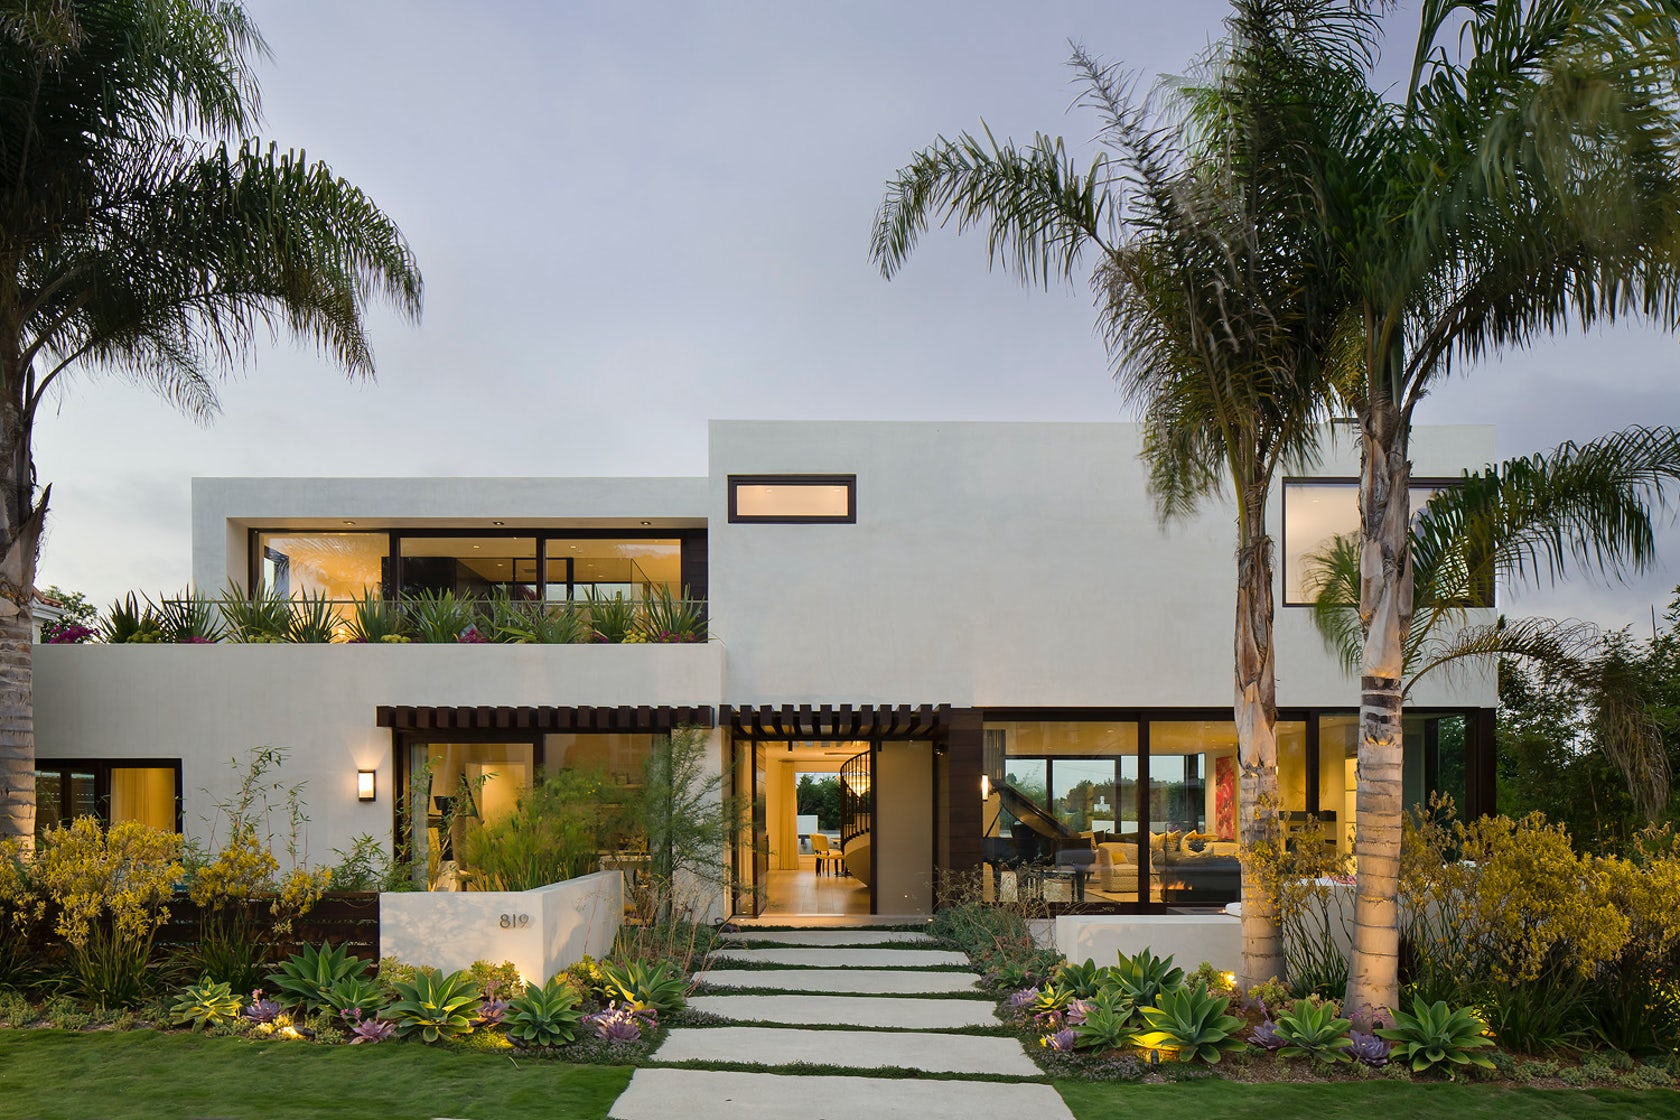 modern houses architecture united states designs incredible subu usa latest facade residence exterior california homes architect exteriors unique auto state